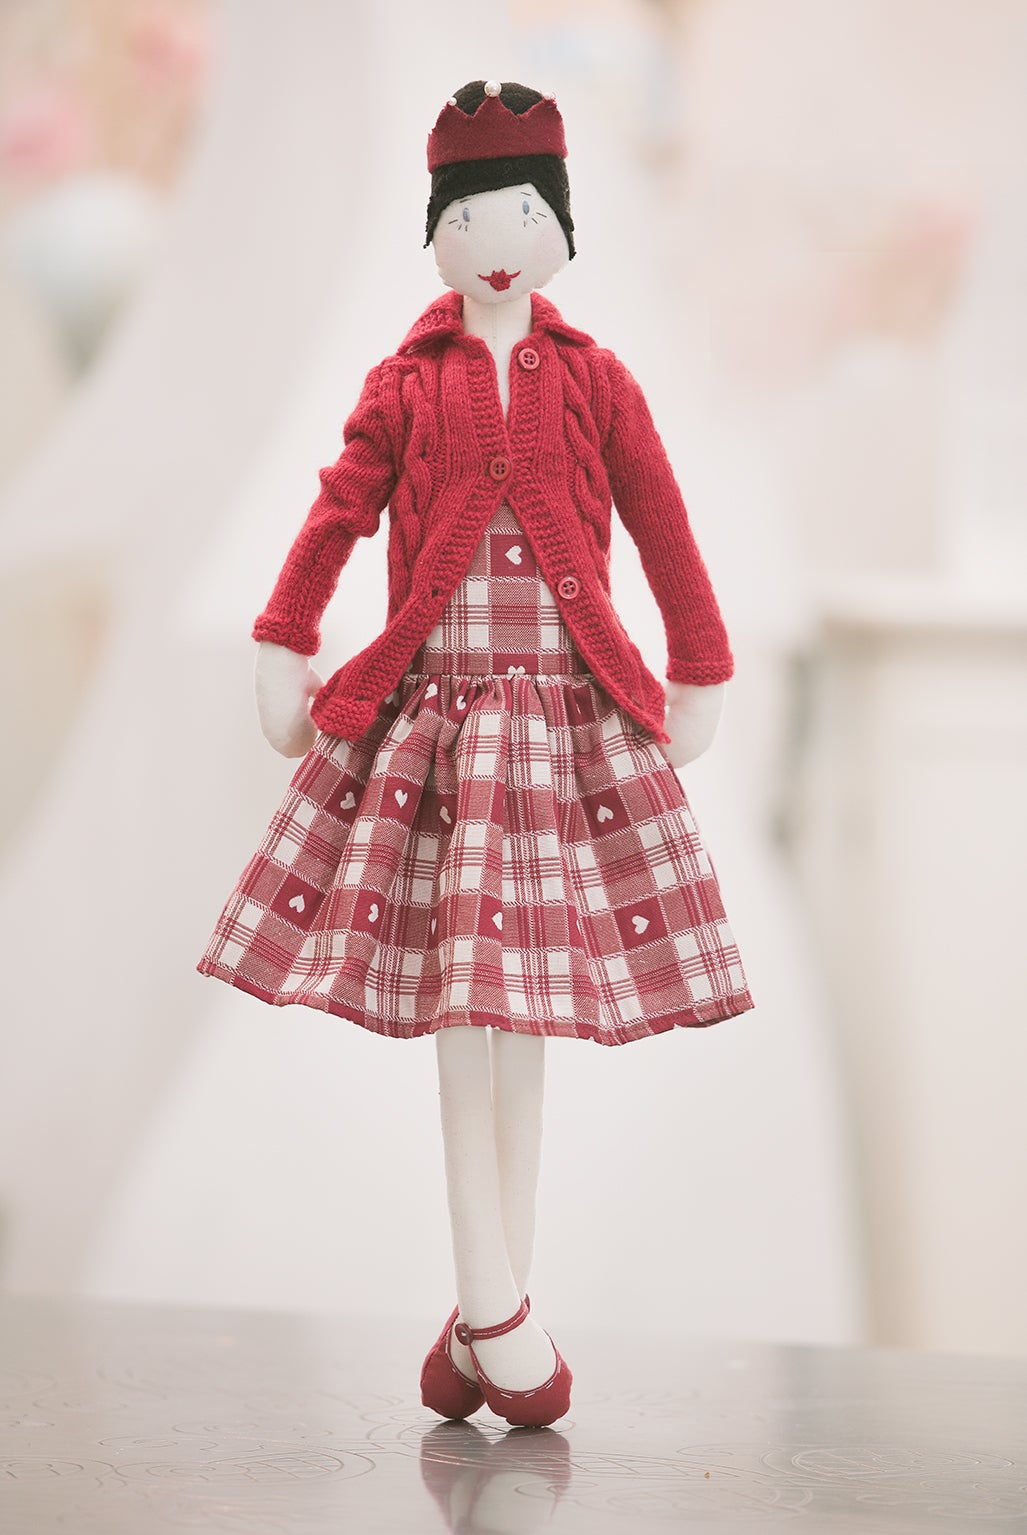 Image of Rosa in winter red outfit